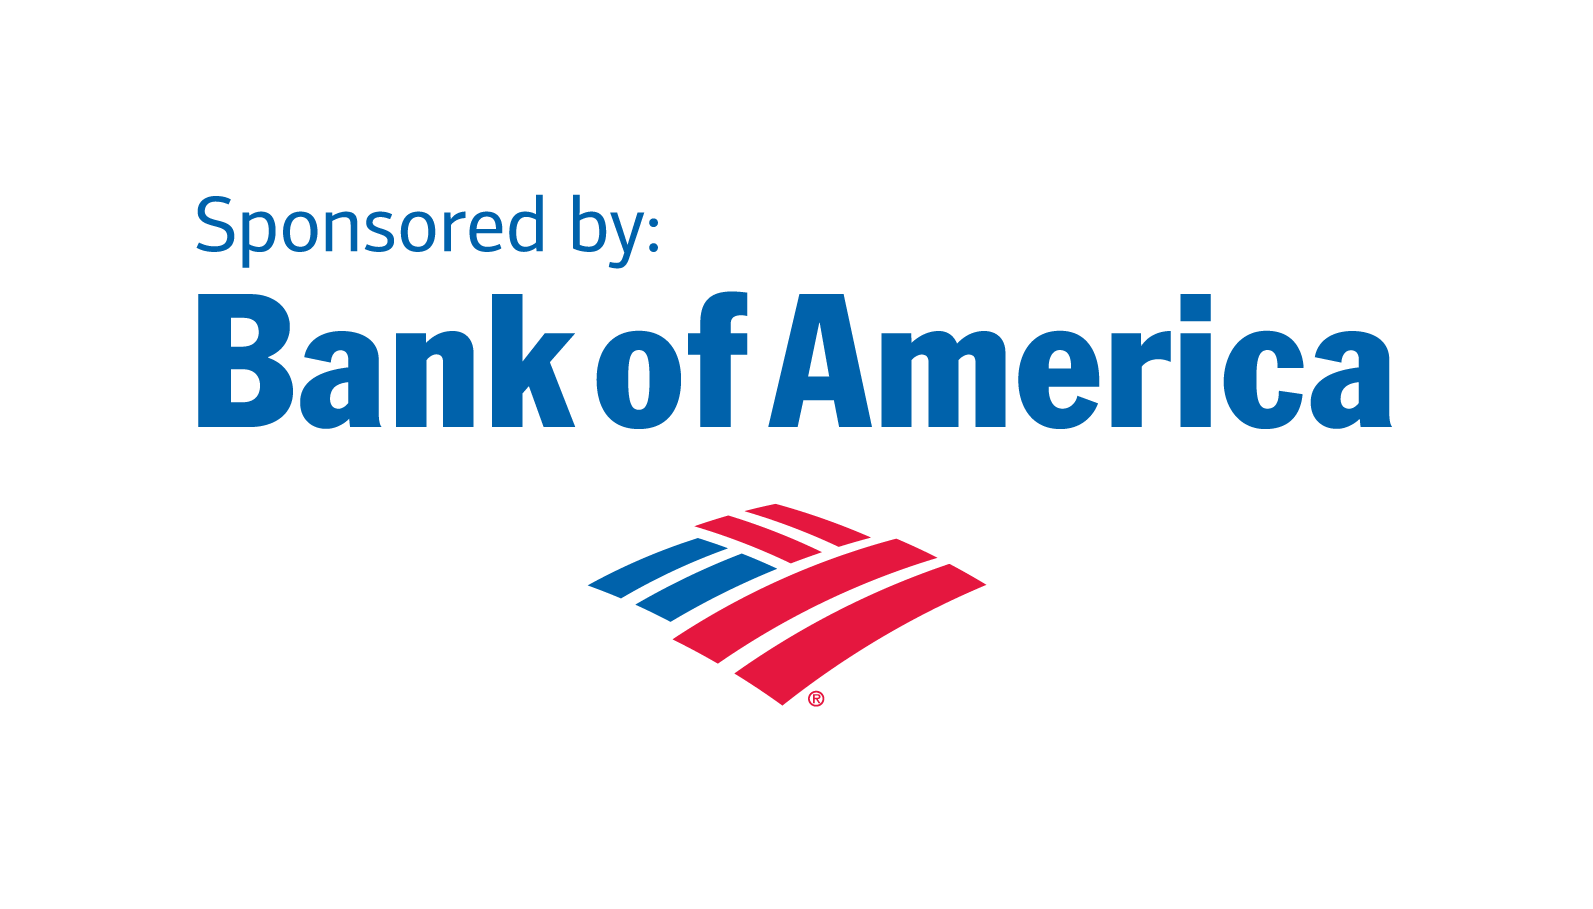 Sponsored by Bank of America